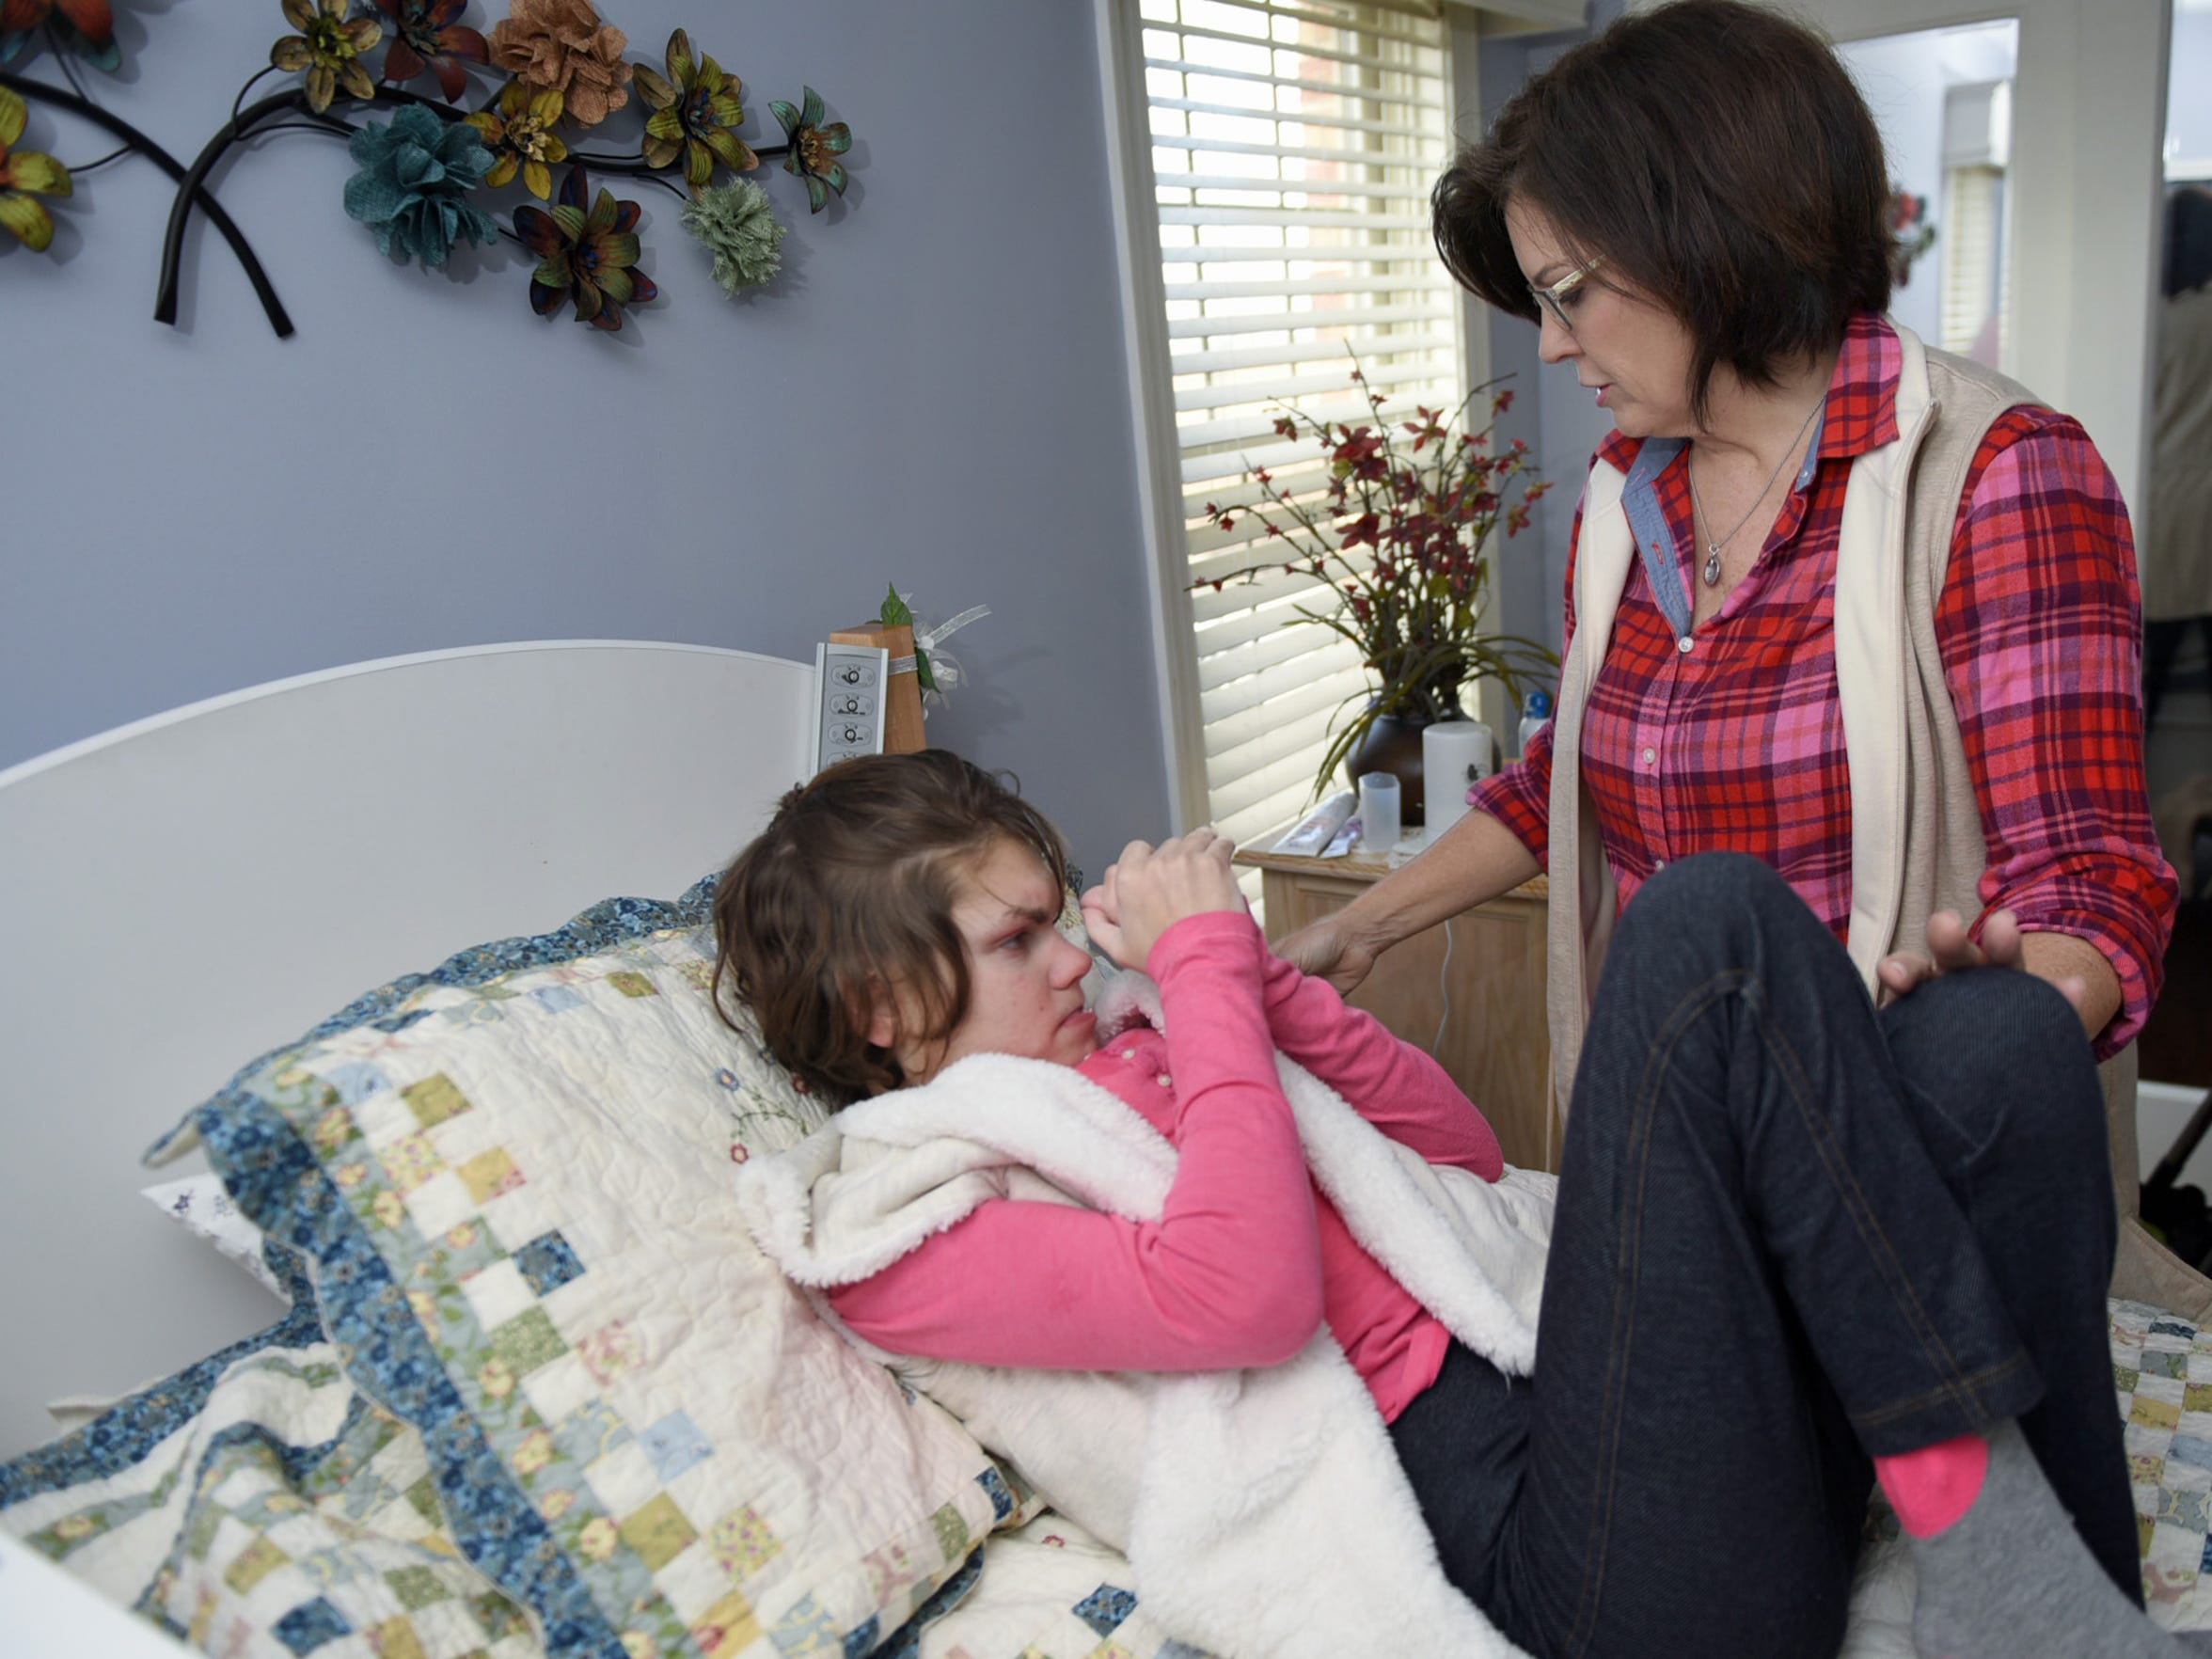 Karen Diller helps her daughter, Karly, 20, out of bed on Friday, February 20, 2017 at their Chambersburg area home. Karly was born with a rare X-linked genetic disorder that causes seizures called CDKL 5 and is on a clinical trial of a drug that uses marijuana.